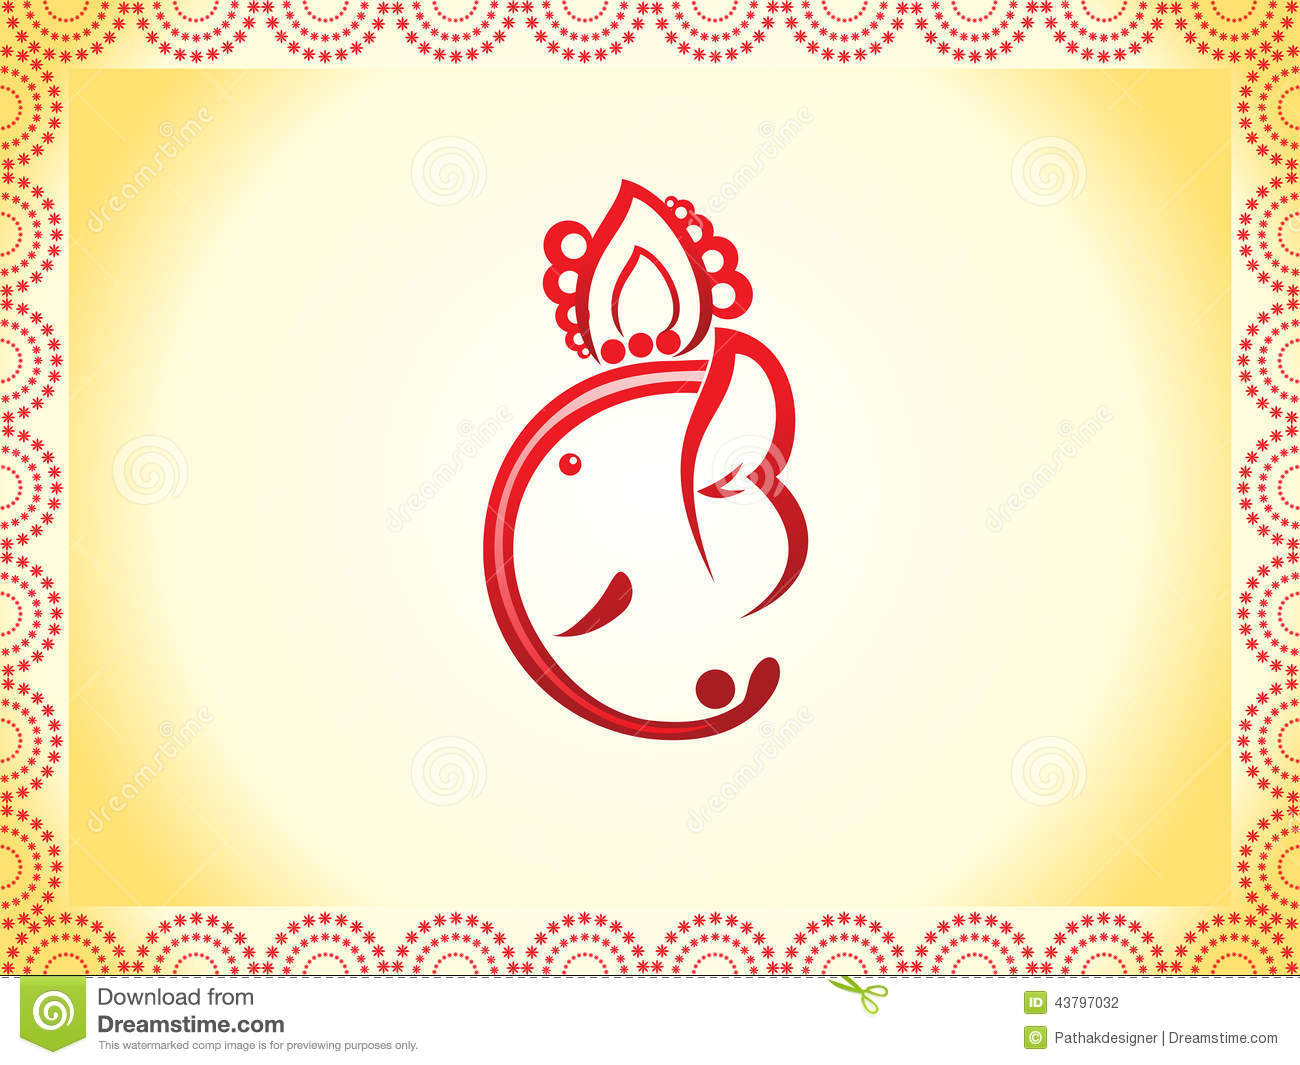 Abstract Ganesha Chaturthi Background Stock Vector - Image ...